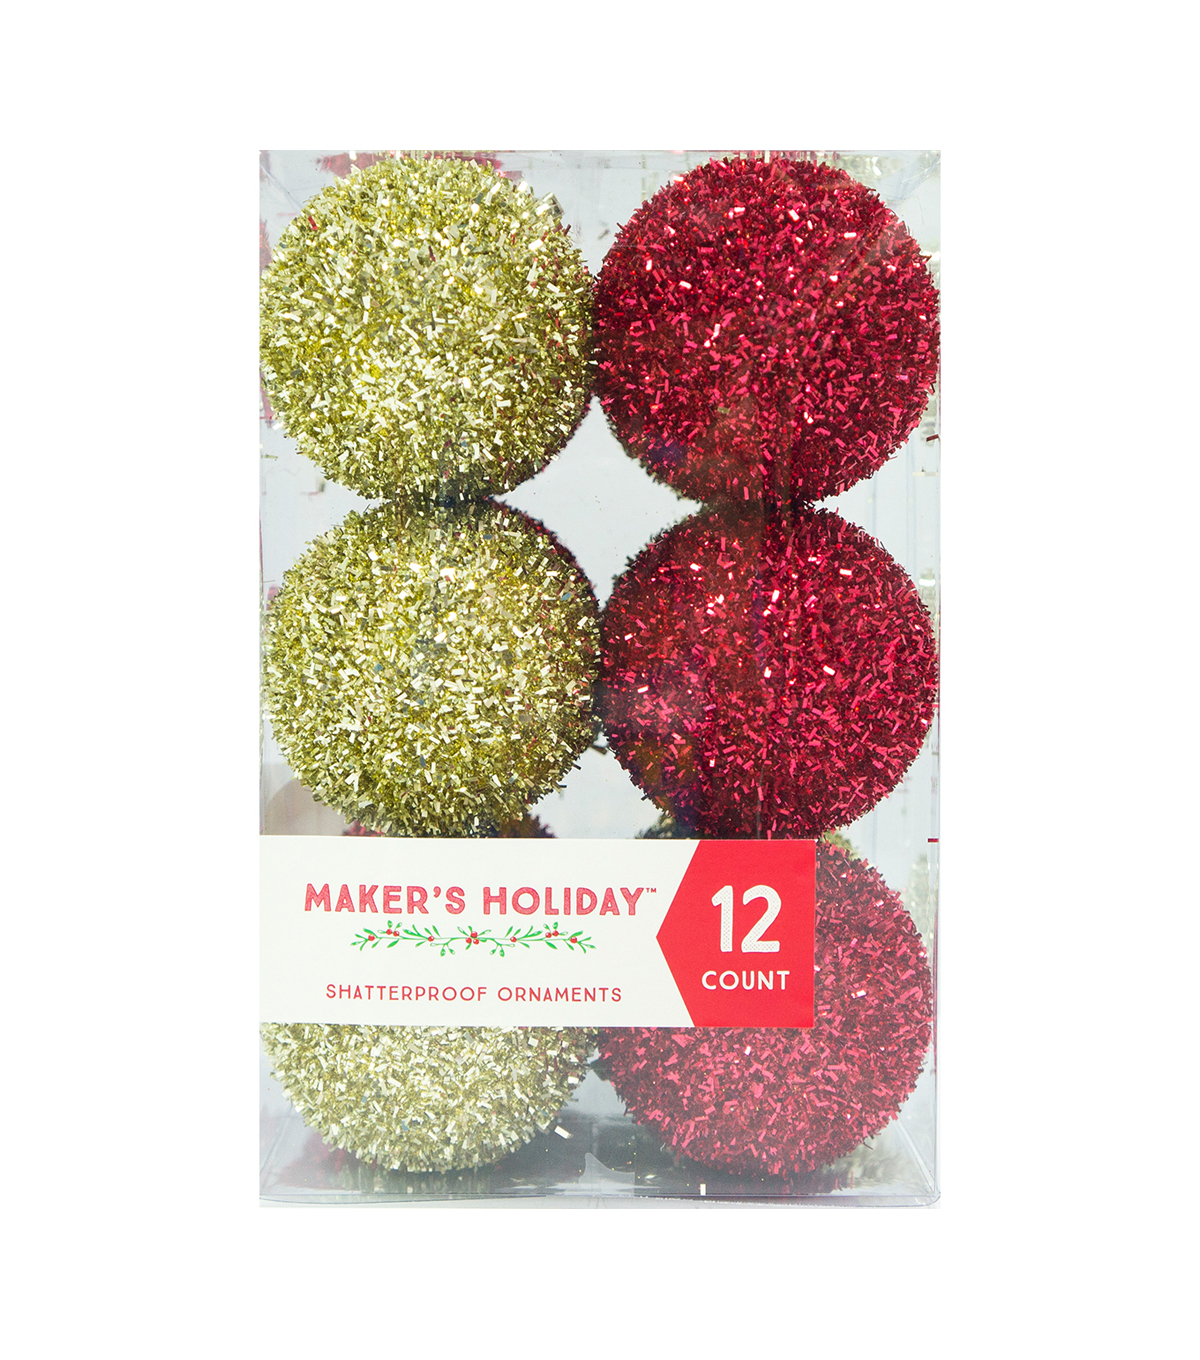 Maker's Holiday Pack of 12 Fuzzy Ornaments-Red Gold